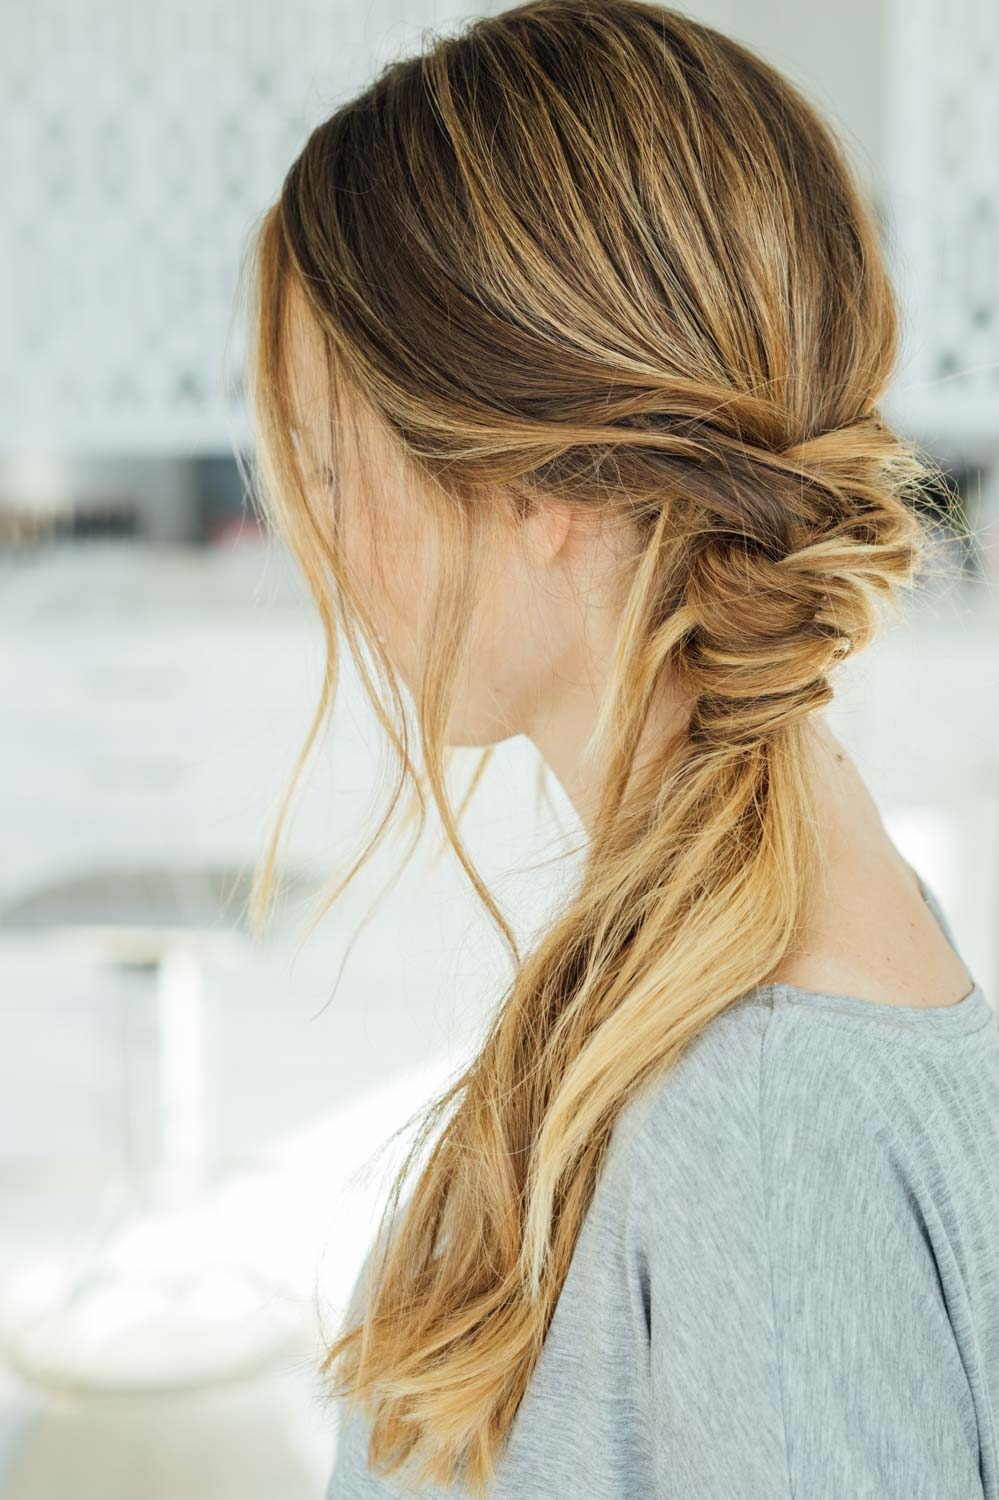 11 Easy Hairstyles for Hot Summer Days  The Everygirl